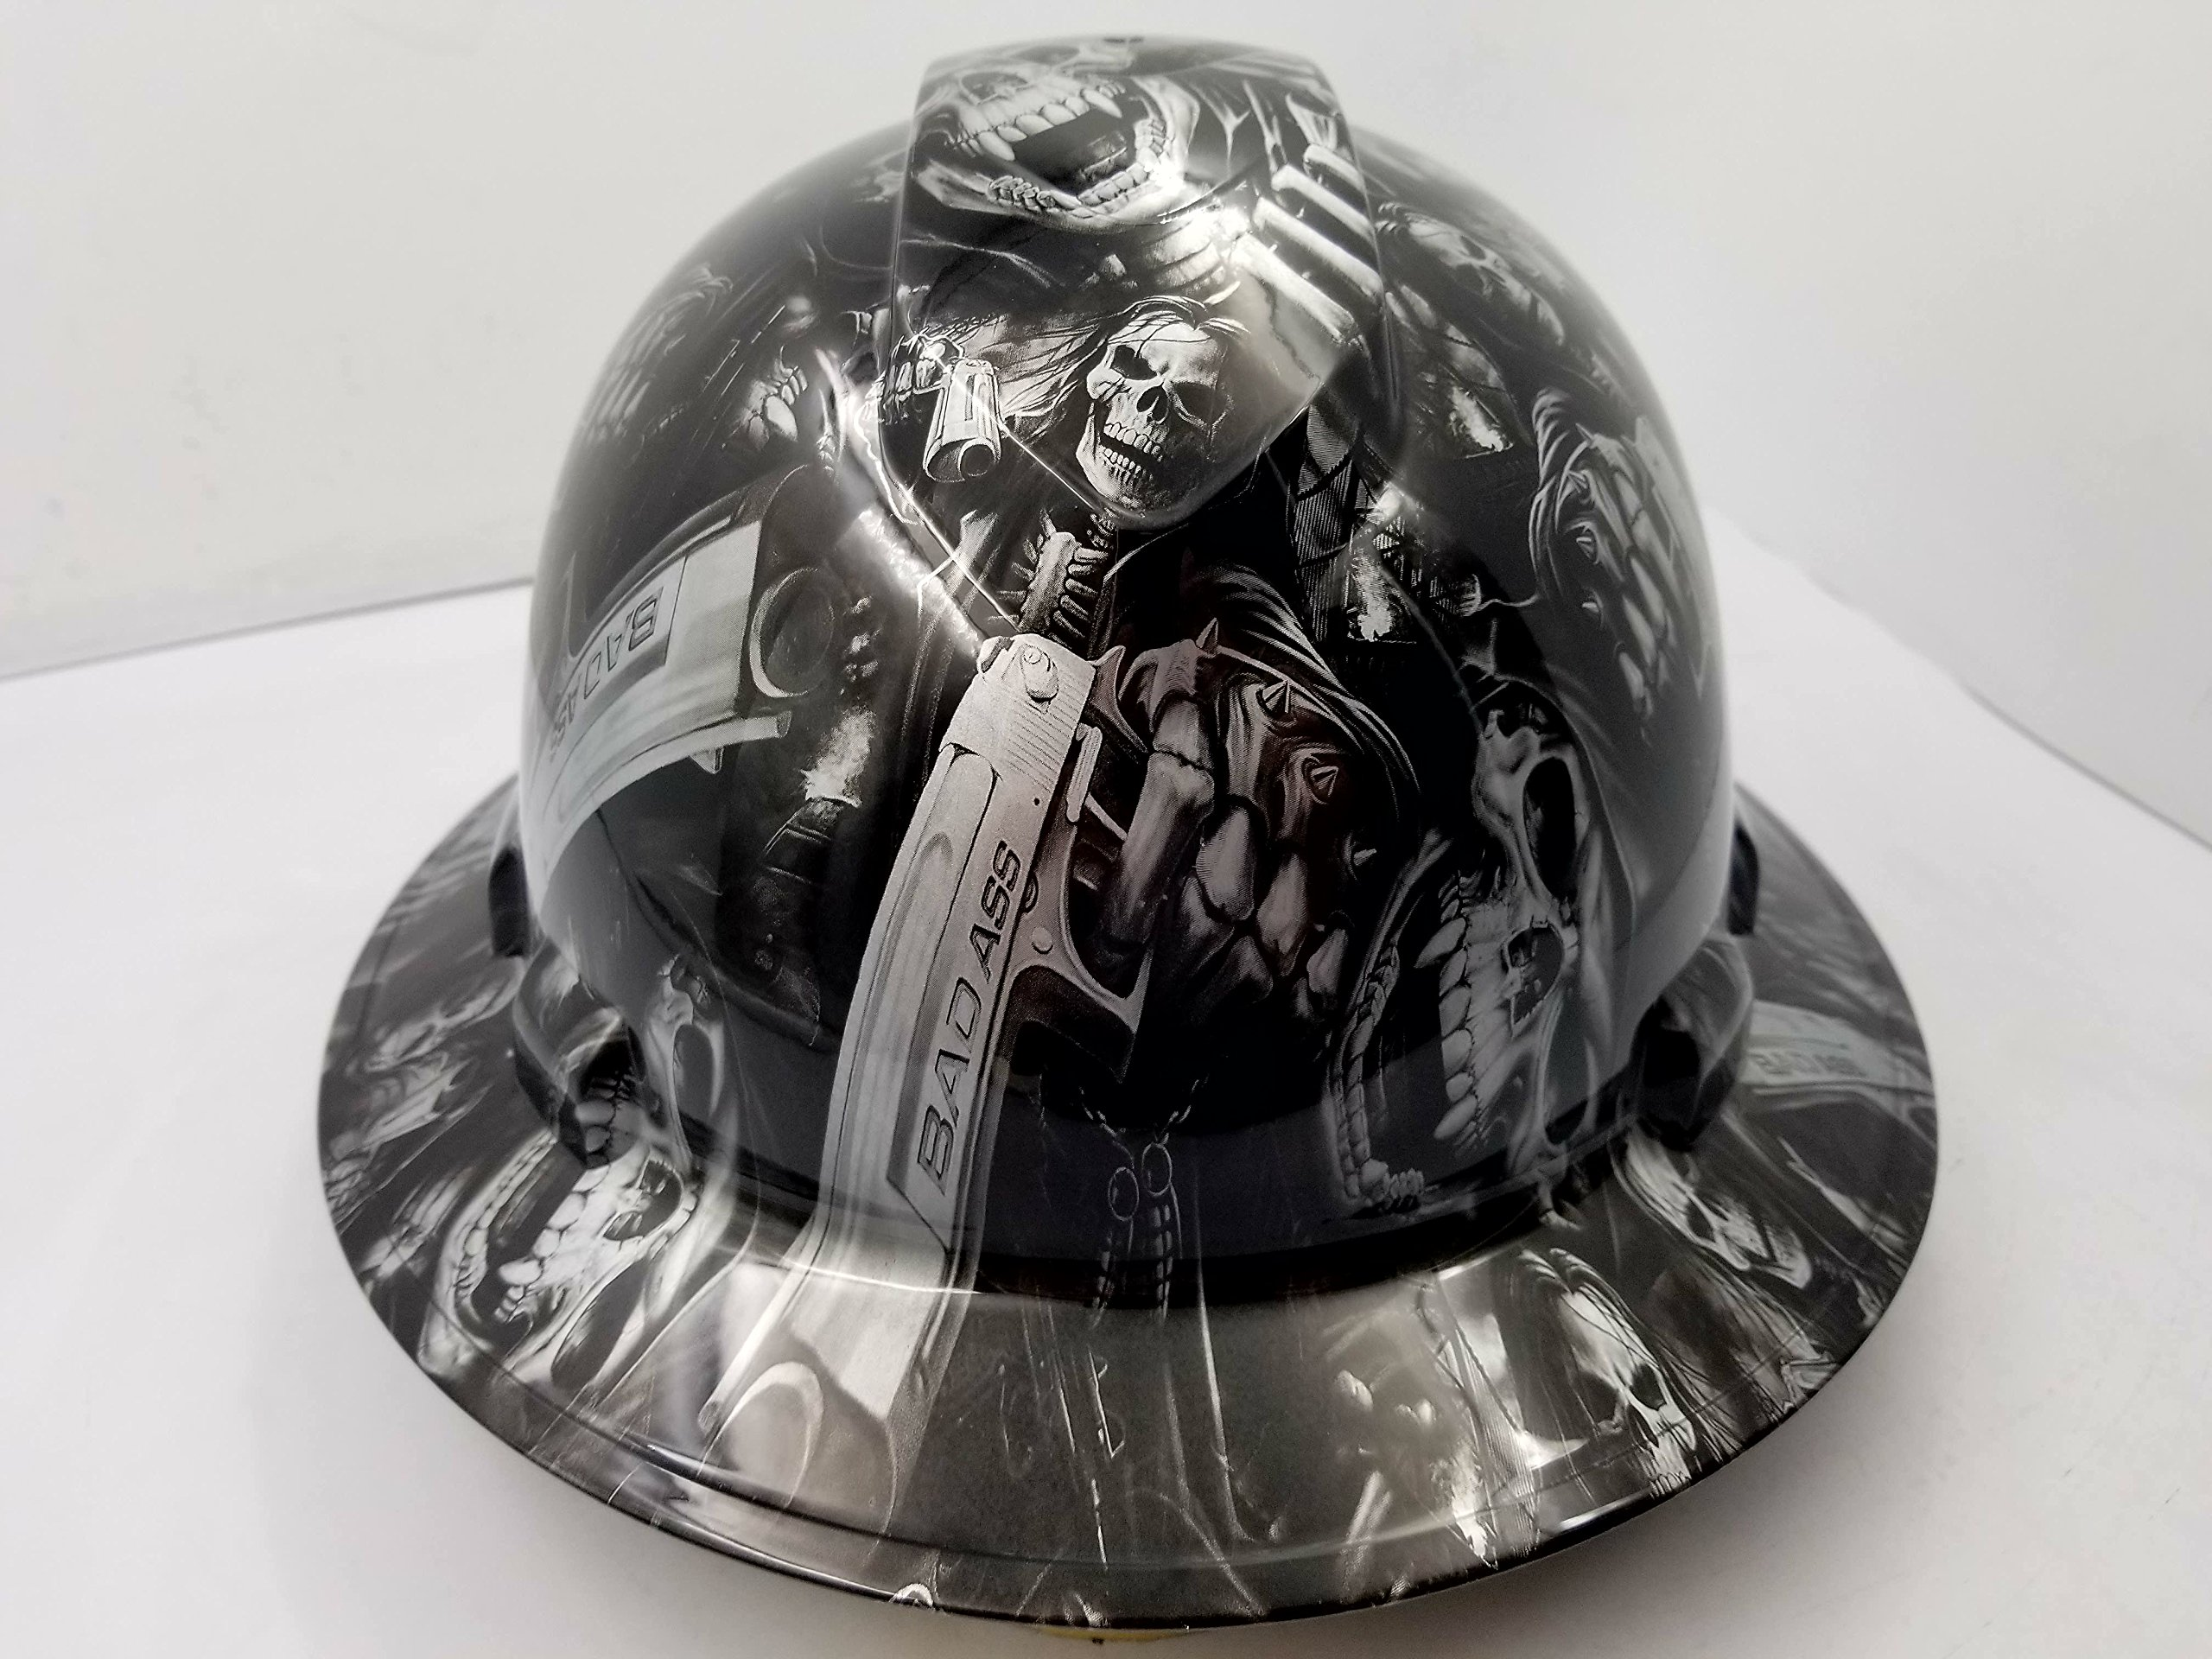 Wet Works Imaging Customized Pyramex Full Brim Grim Reaper Skull Shooter Hard HAT with Ratcheting Suspension Custom LIDS Crazy Sick Construction PPE by Wet Works Imaging